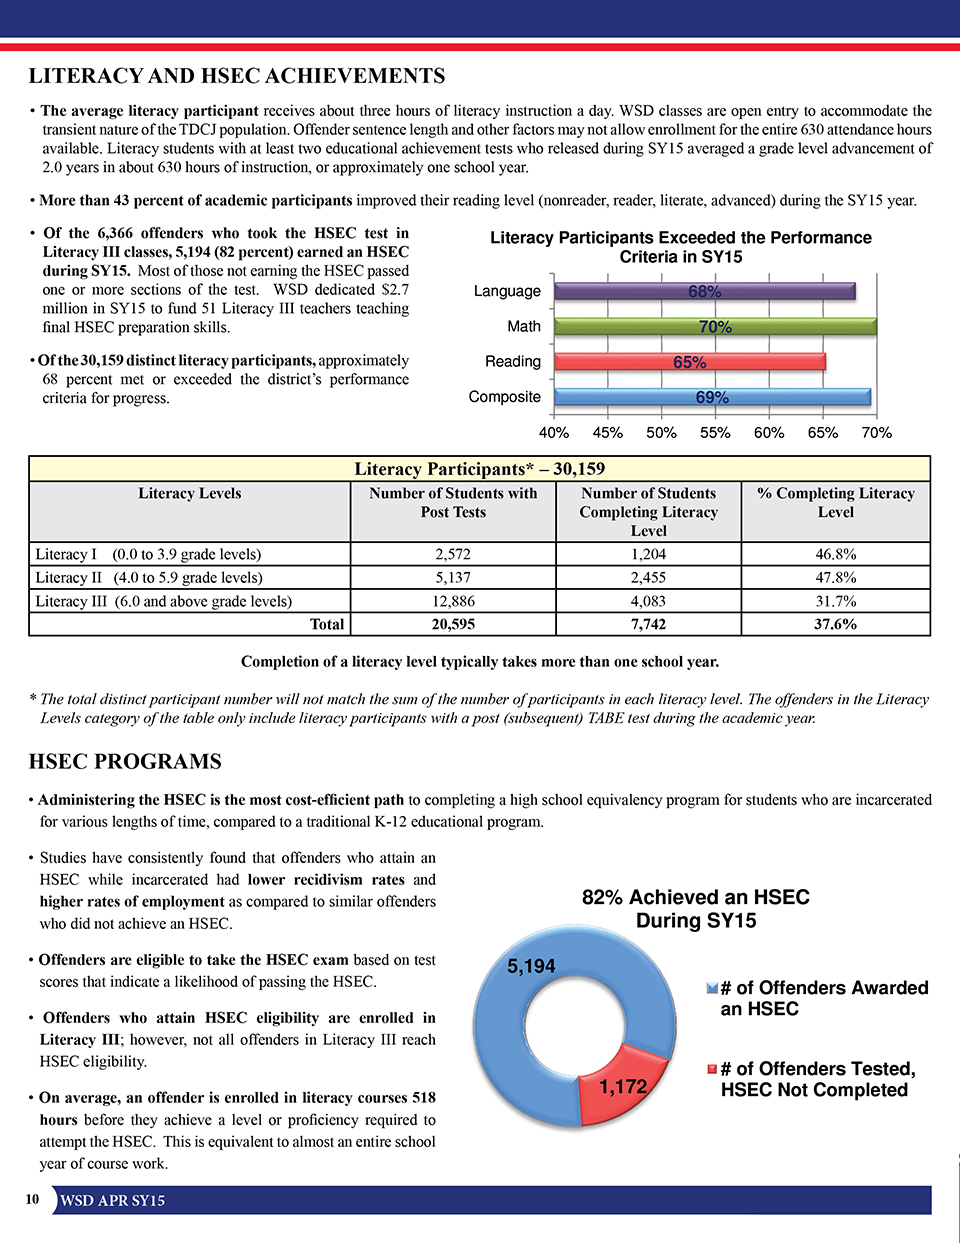 Annual Performance Report 2014-2015